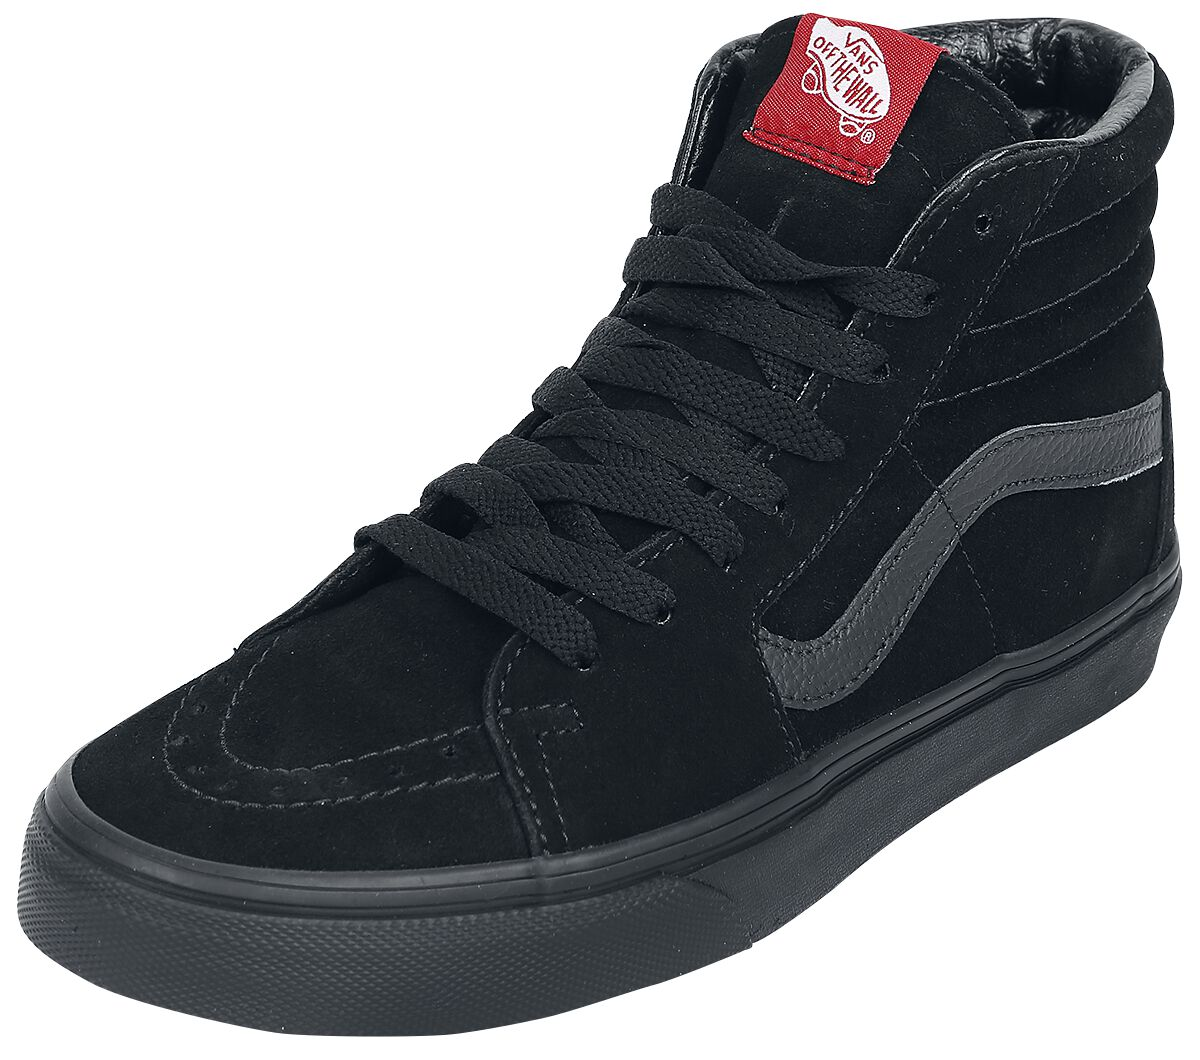 Image of   Vans Sk8-Hi Sneakers sort-sort